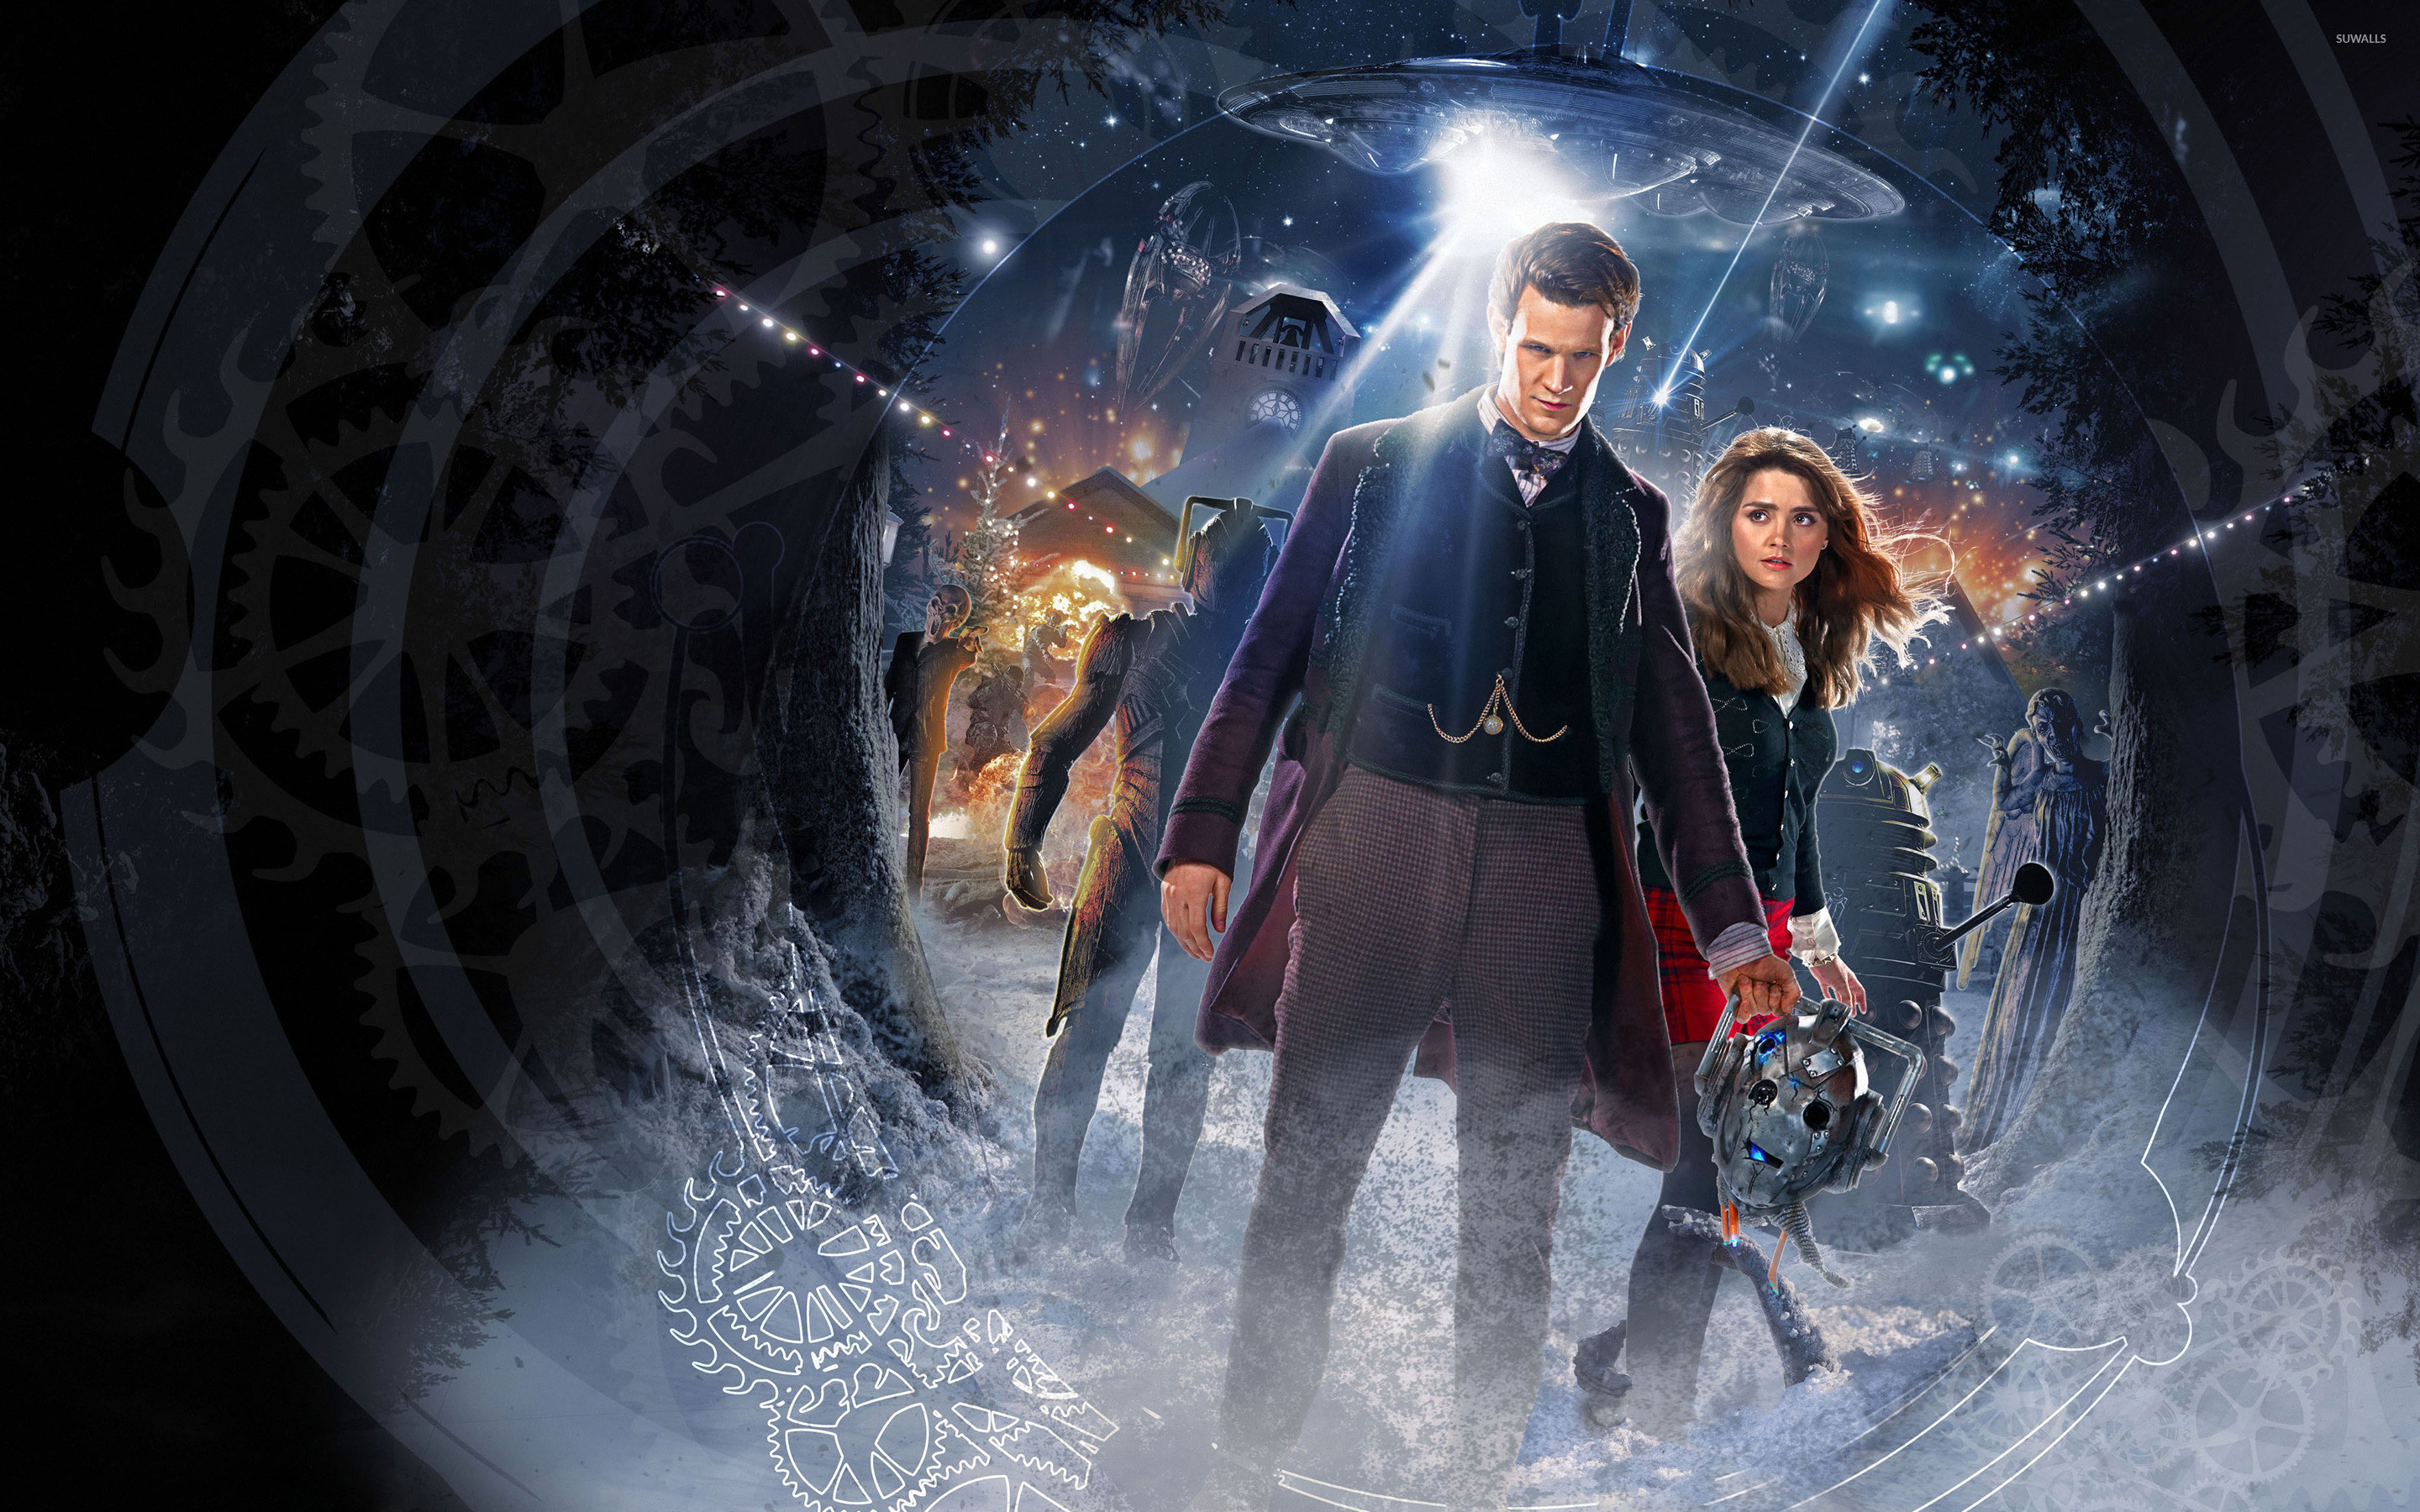 2880x1800 The Time of the Doctor wallpaper